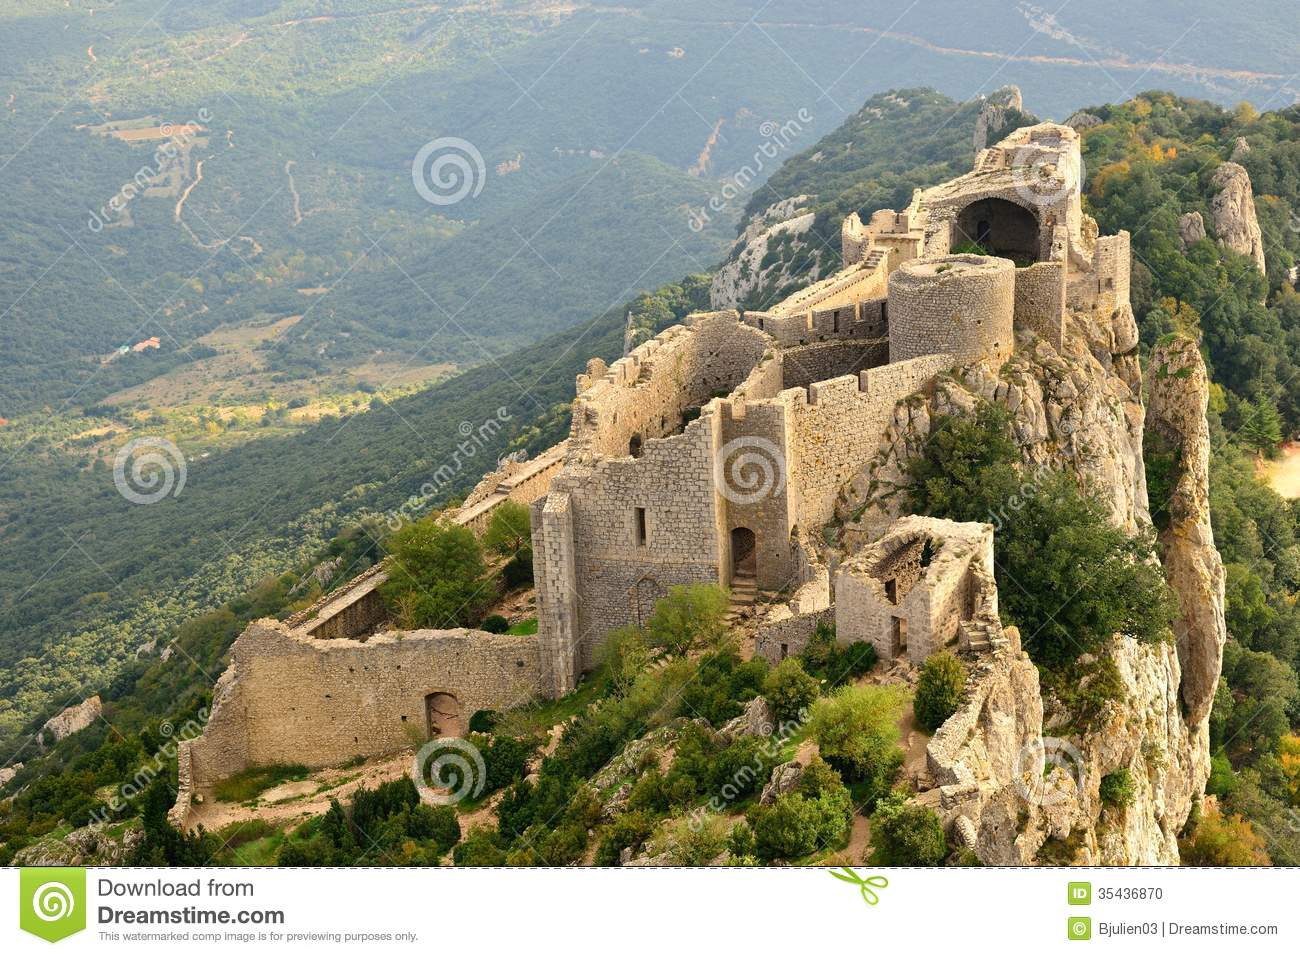 Peyrepertuse Cathar Castle Seen From Above Stock Photo.